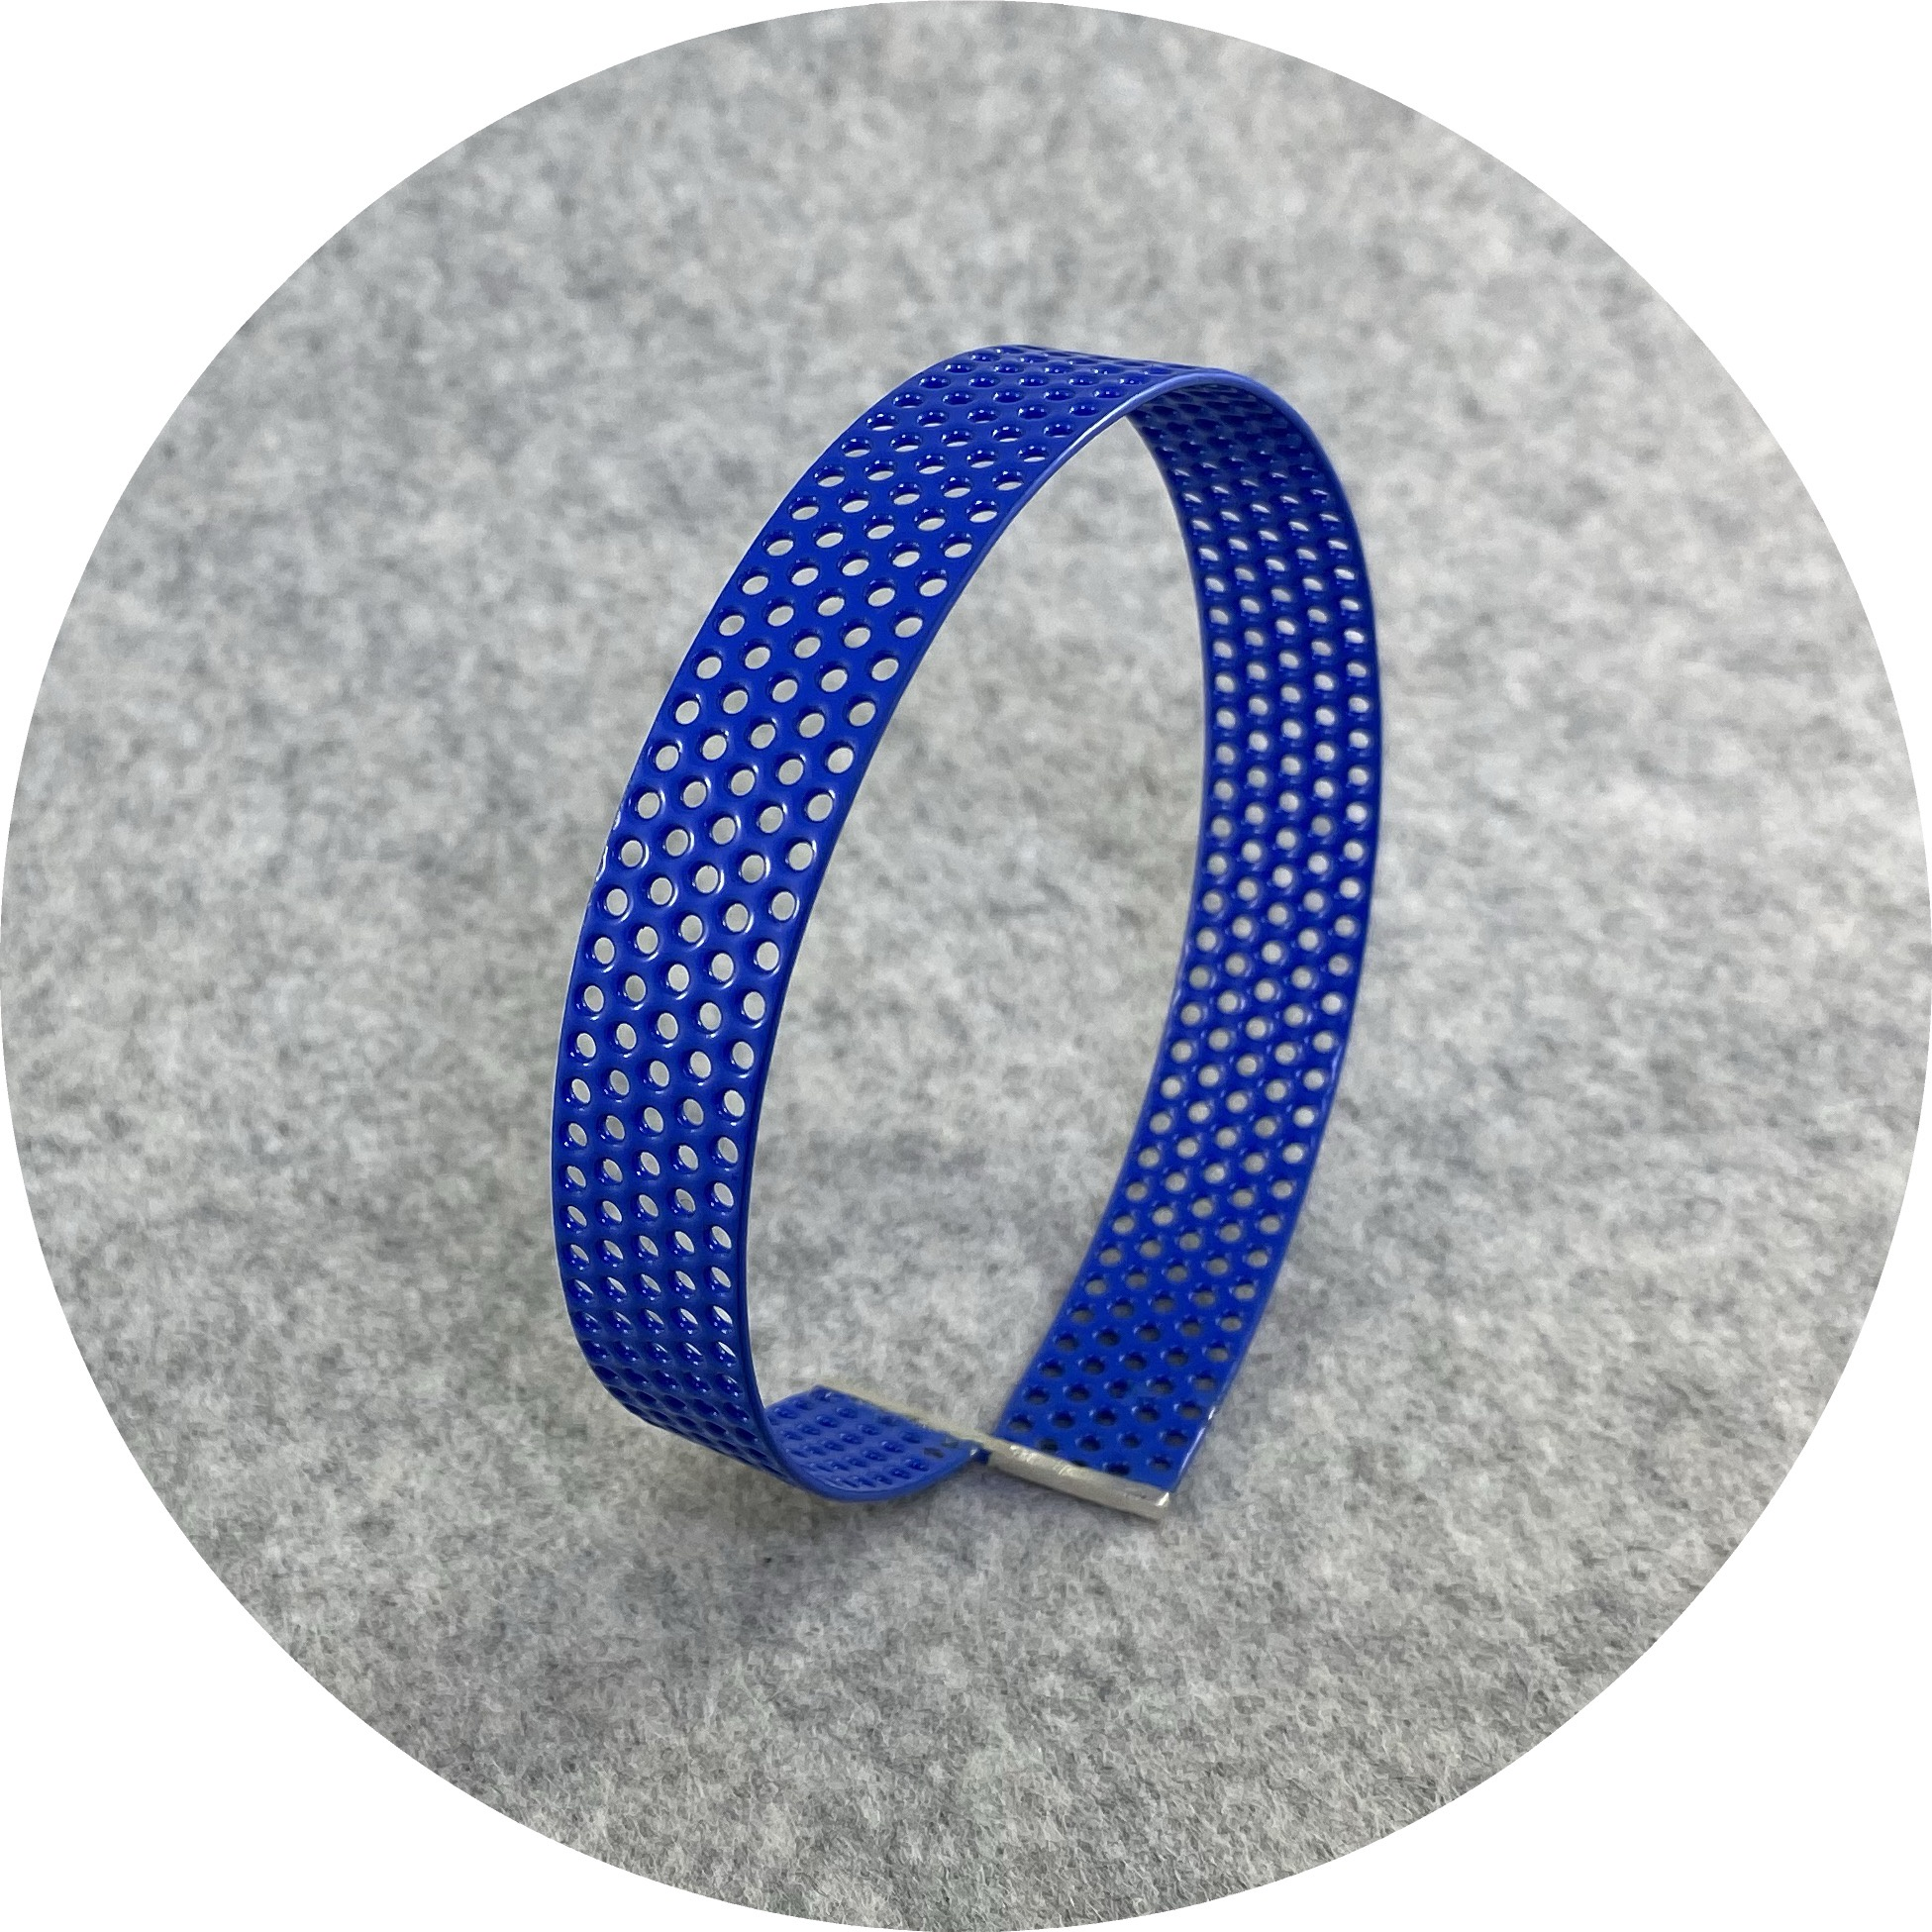 Jin Ah Jo - Blue Perforated One Strip Twisited Bangle in Midsteel, Silver